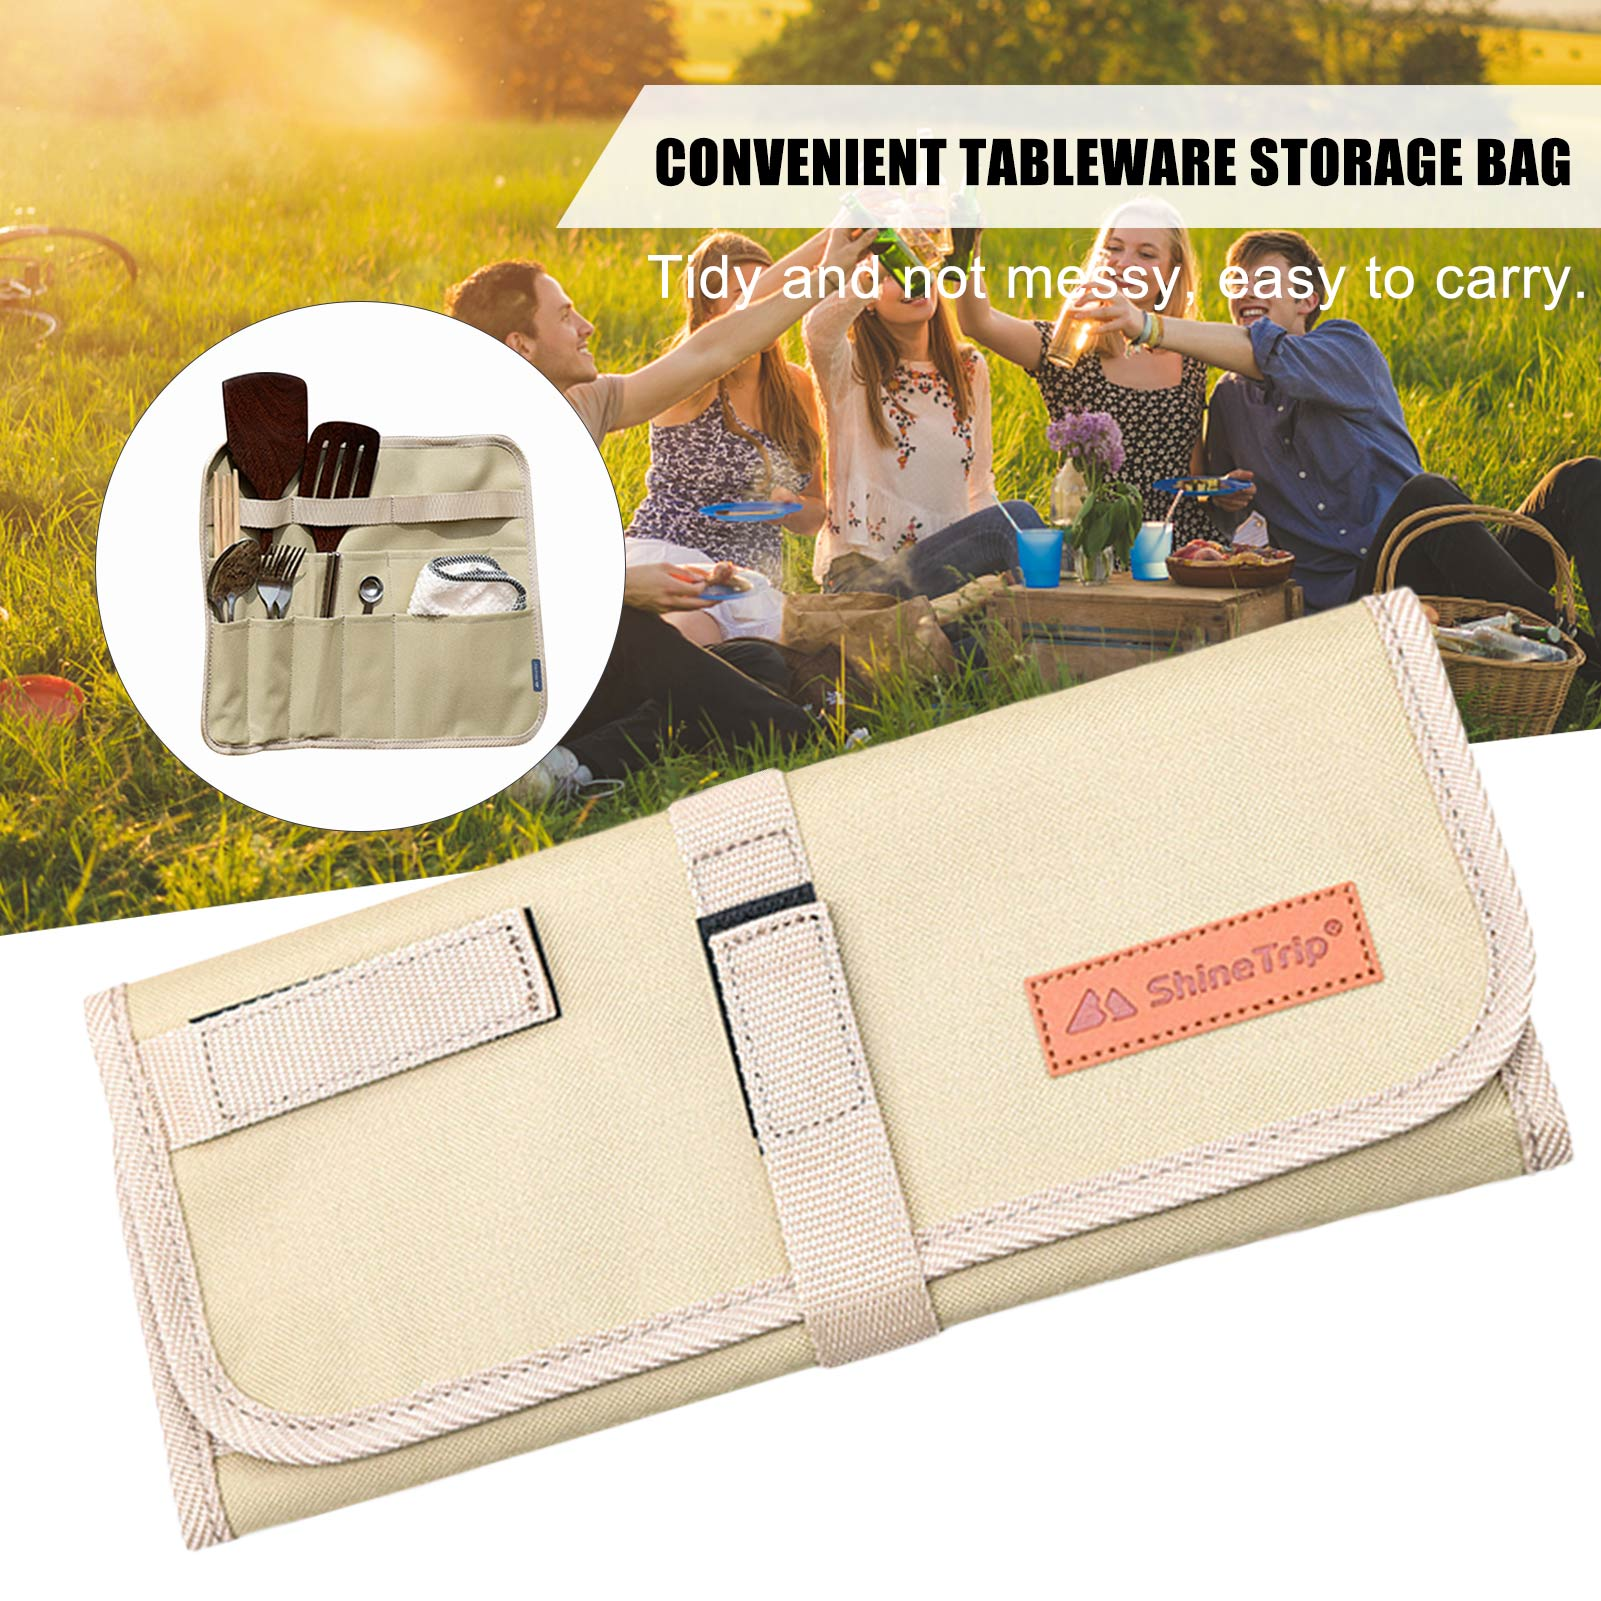 Drawstring Bag Portable Drawer Liner Tableware Storage Bag For Outdoor Camping Storage Cutlery Case For Dinnerware